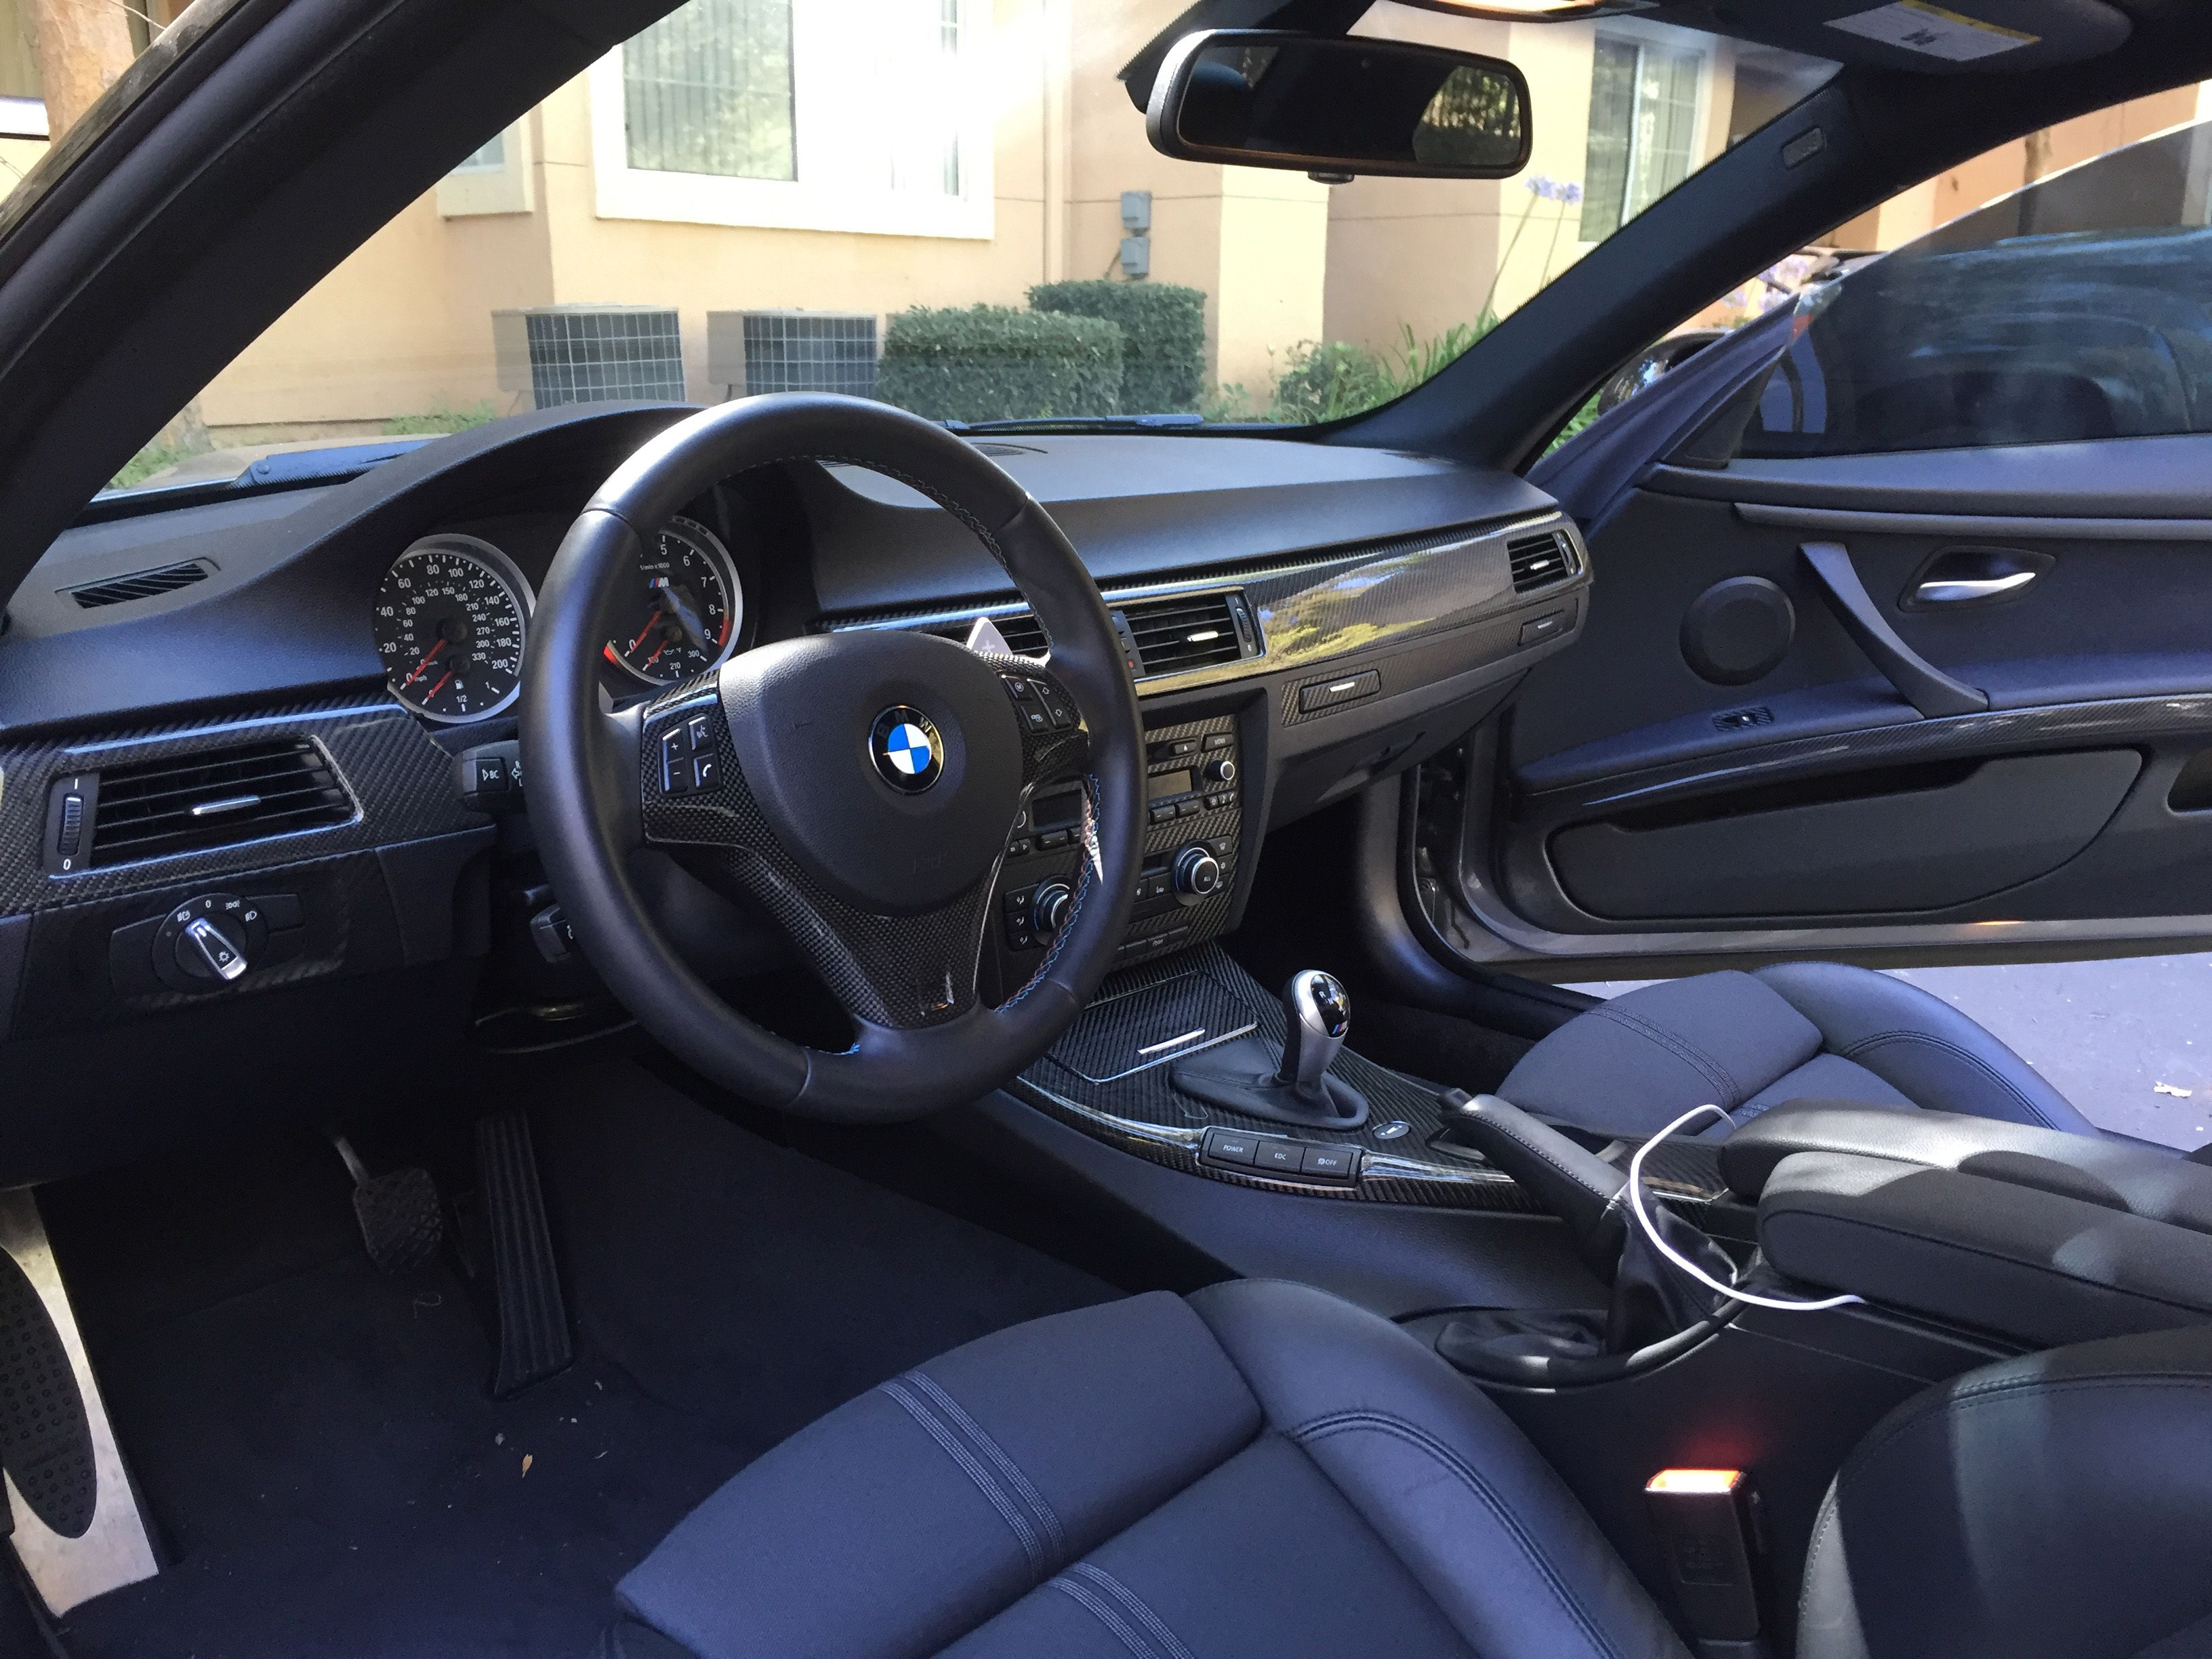 Carbon Fiber Interior Trim Kit On A Bmw E92 M3 Interior Trim